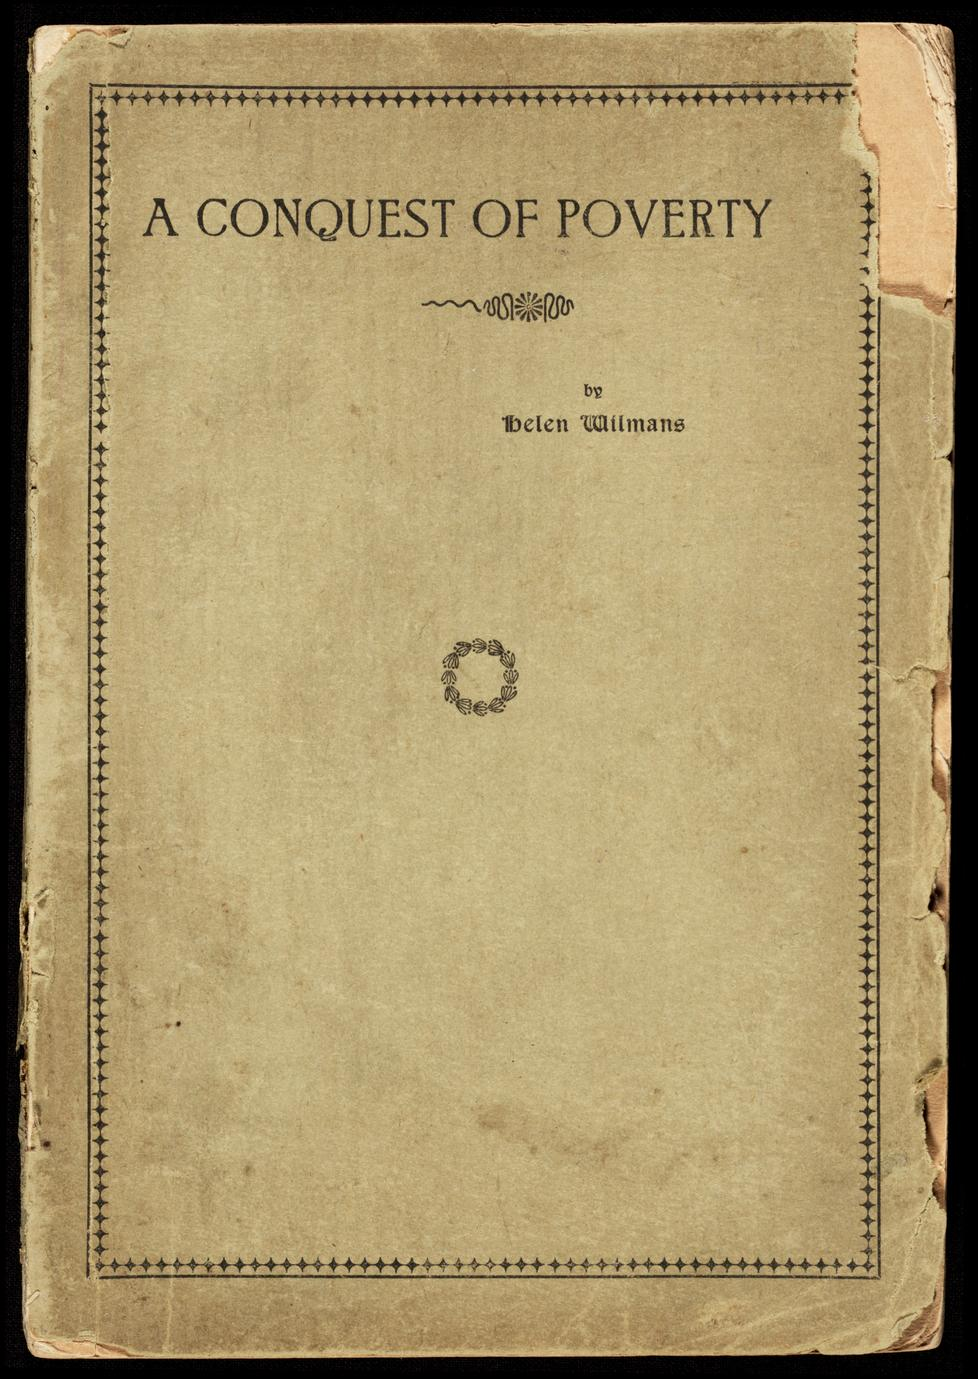 A conquest of poverty (1 of 2)